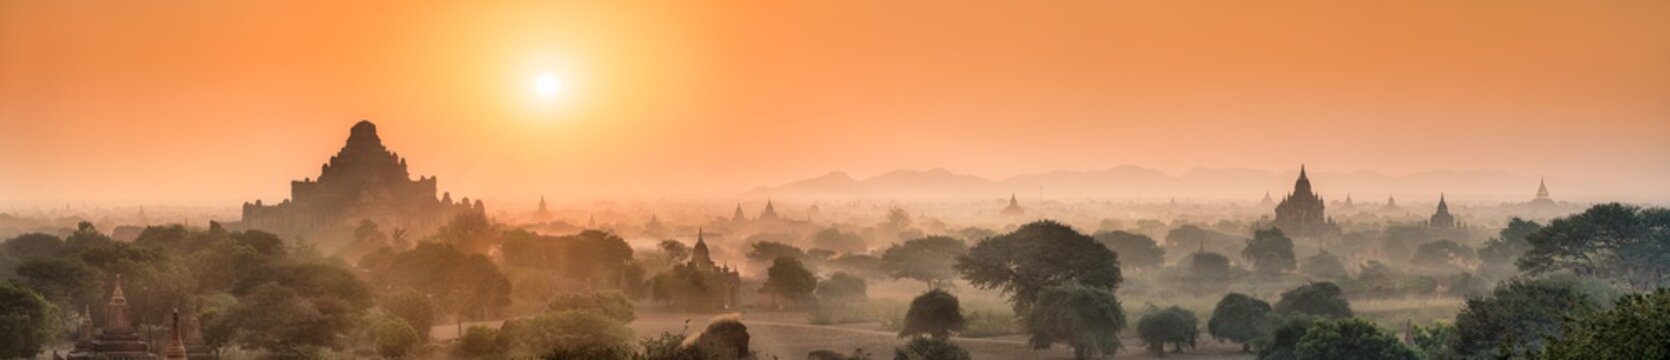 Panoramic view of Dhammayangyi temple at sunrise, Old Bagan, Myanmar